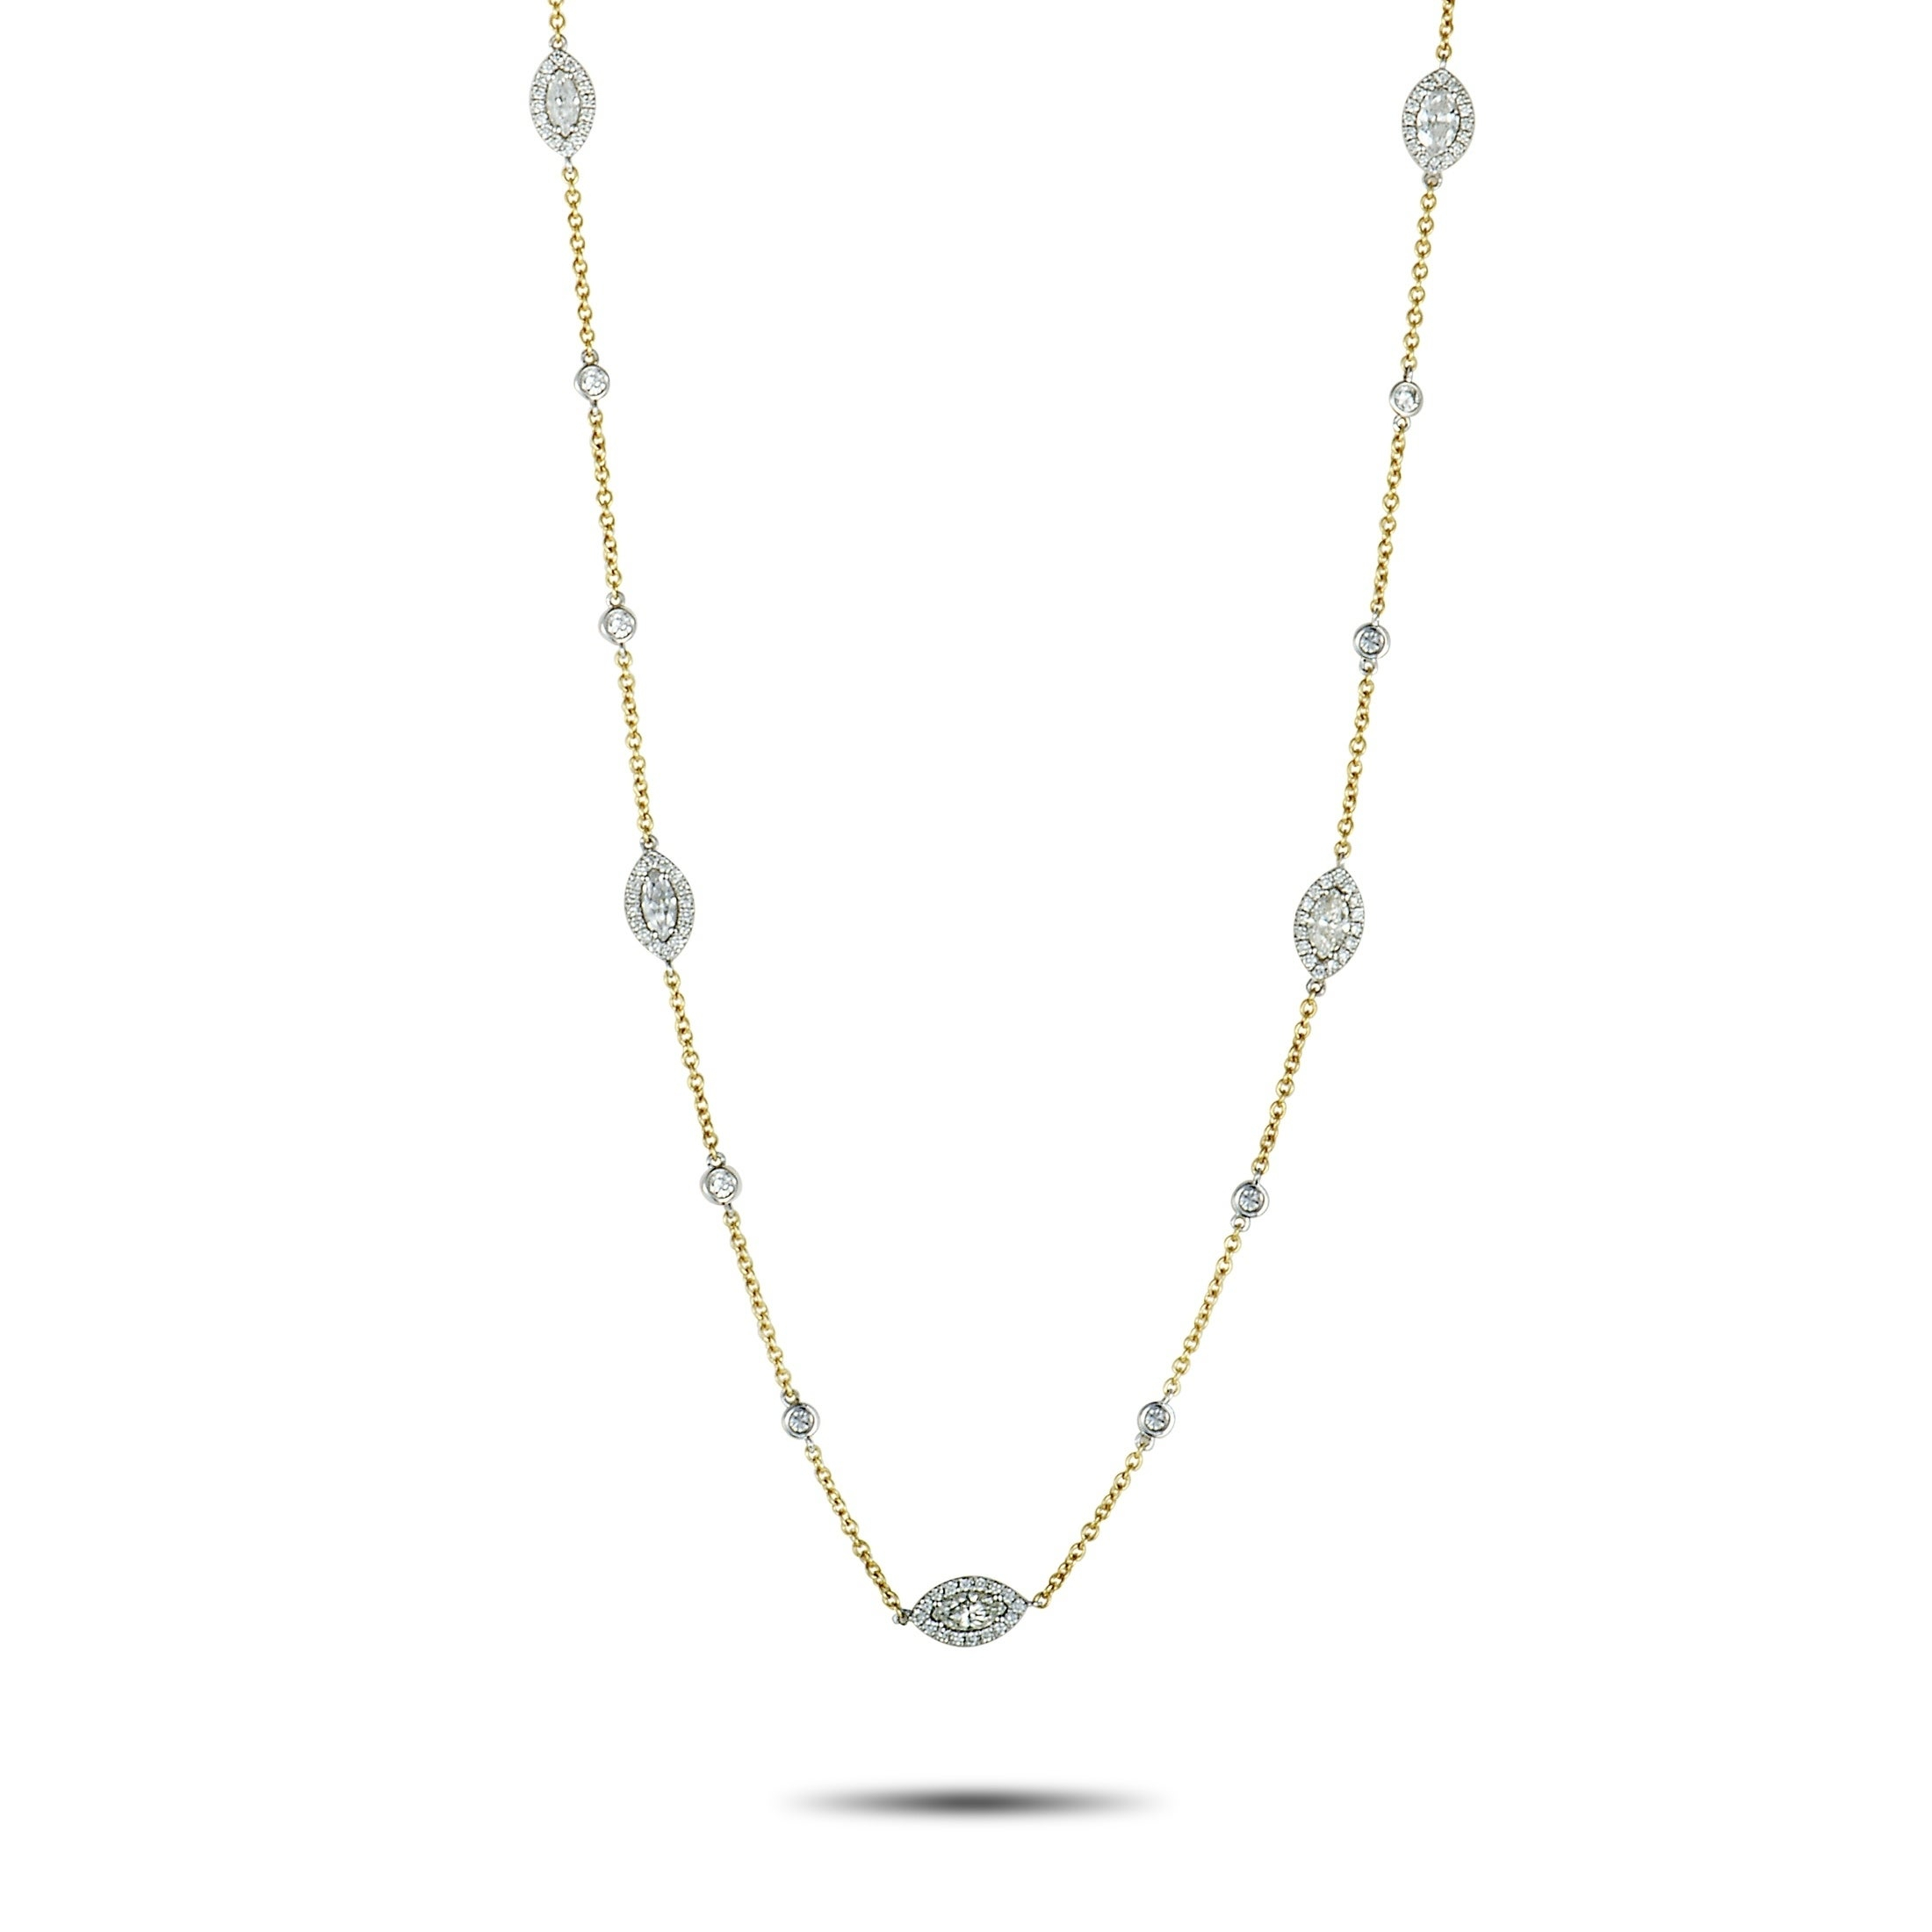 Lb Exclusive Yellow Gold And Round And Marquise Diamonds Long Sautoir Necklace Throughout Current Diamond Sautoir Necklaces In Yellow Gold (View 8 of 25)